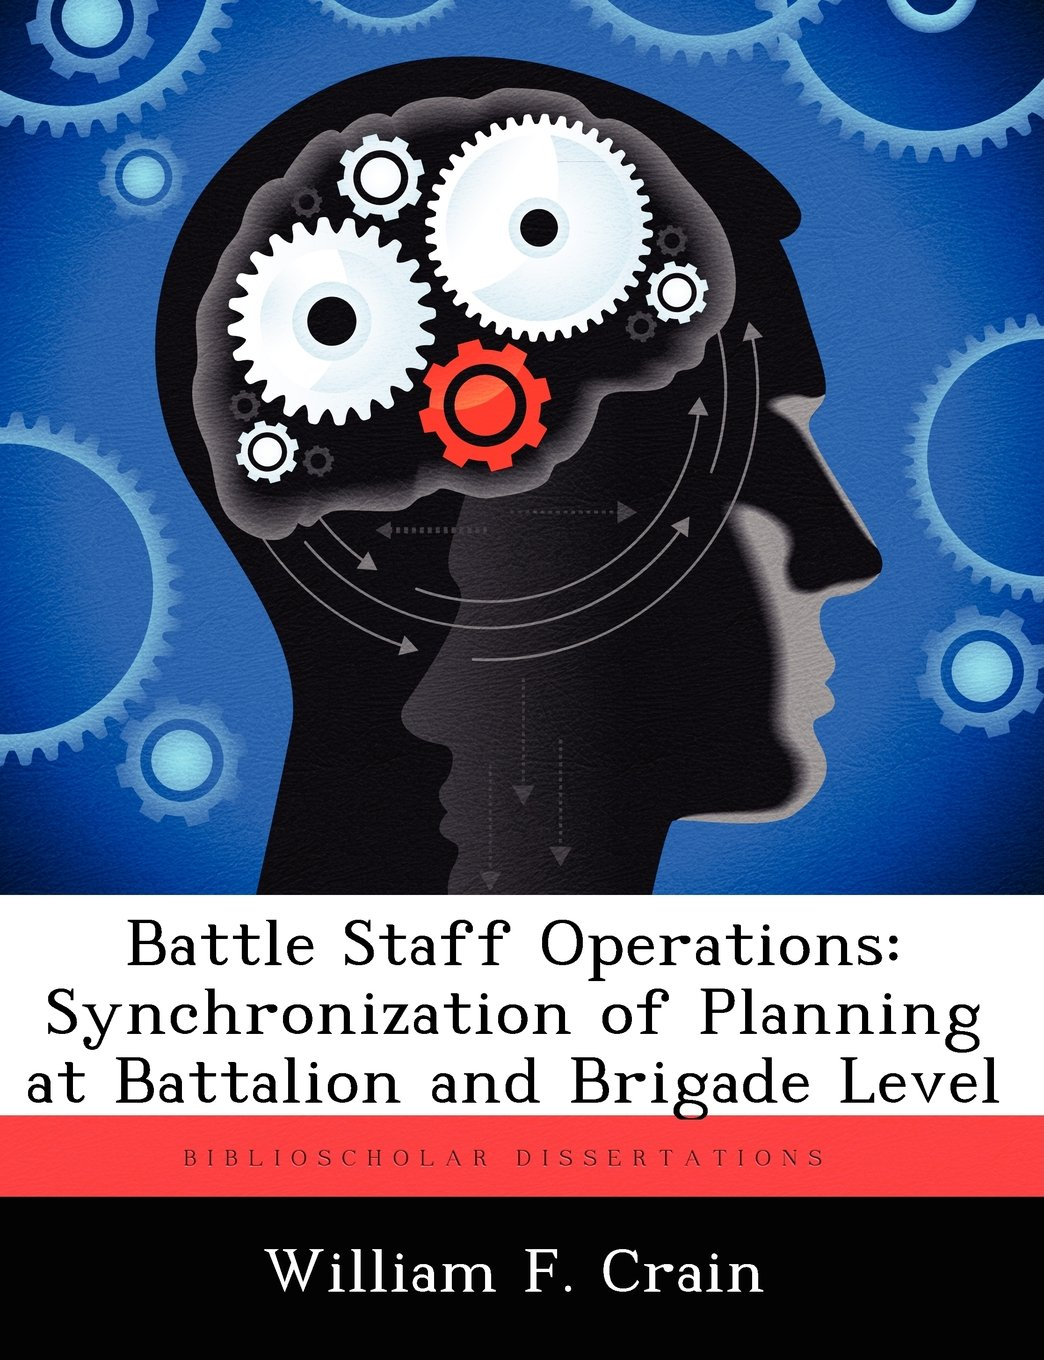 Battle Staff Operations: Synchronization of Planning at Battalion and Brigade Level pdf